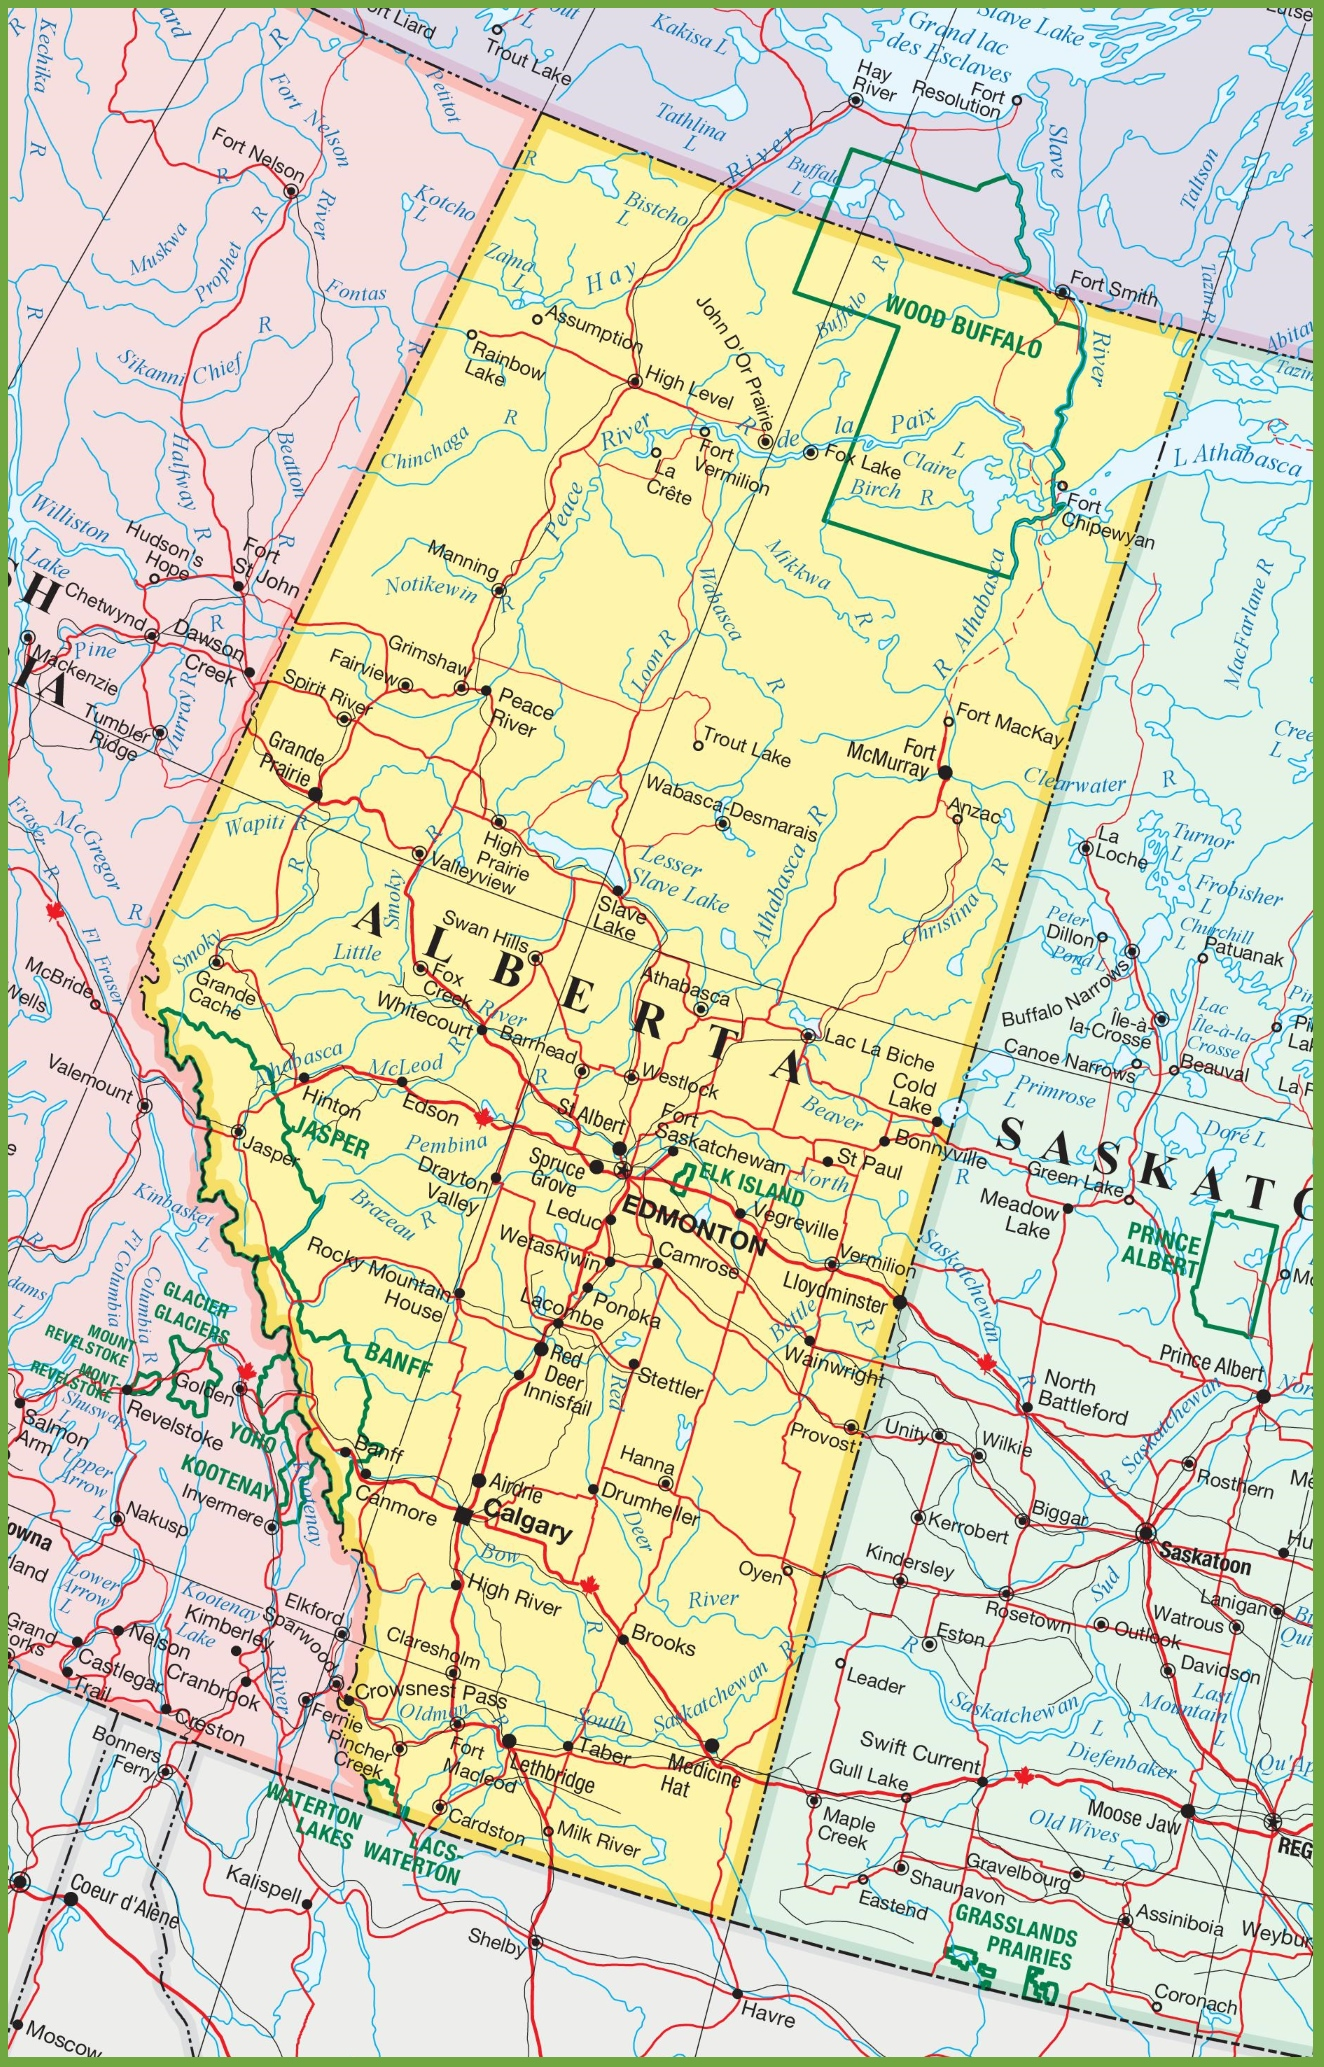 Map Of Canada With Cities And Provinces.Large Detailed Map Of Alberta With Cities And Towns